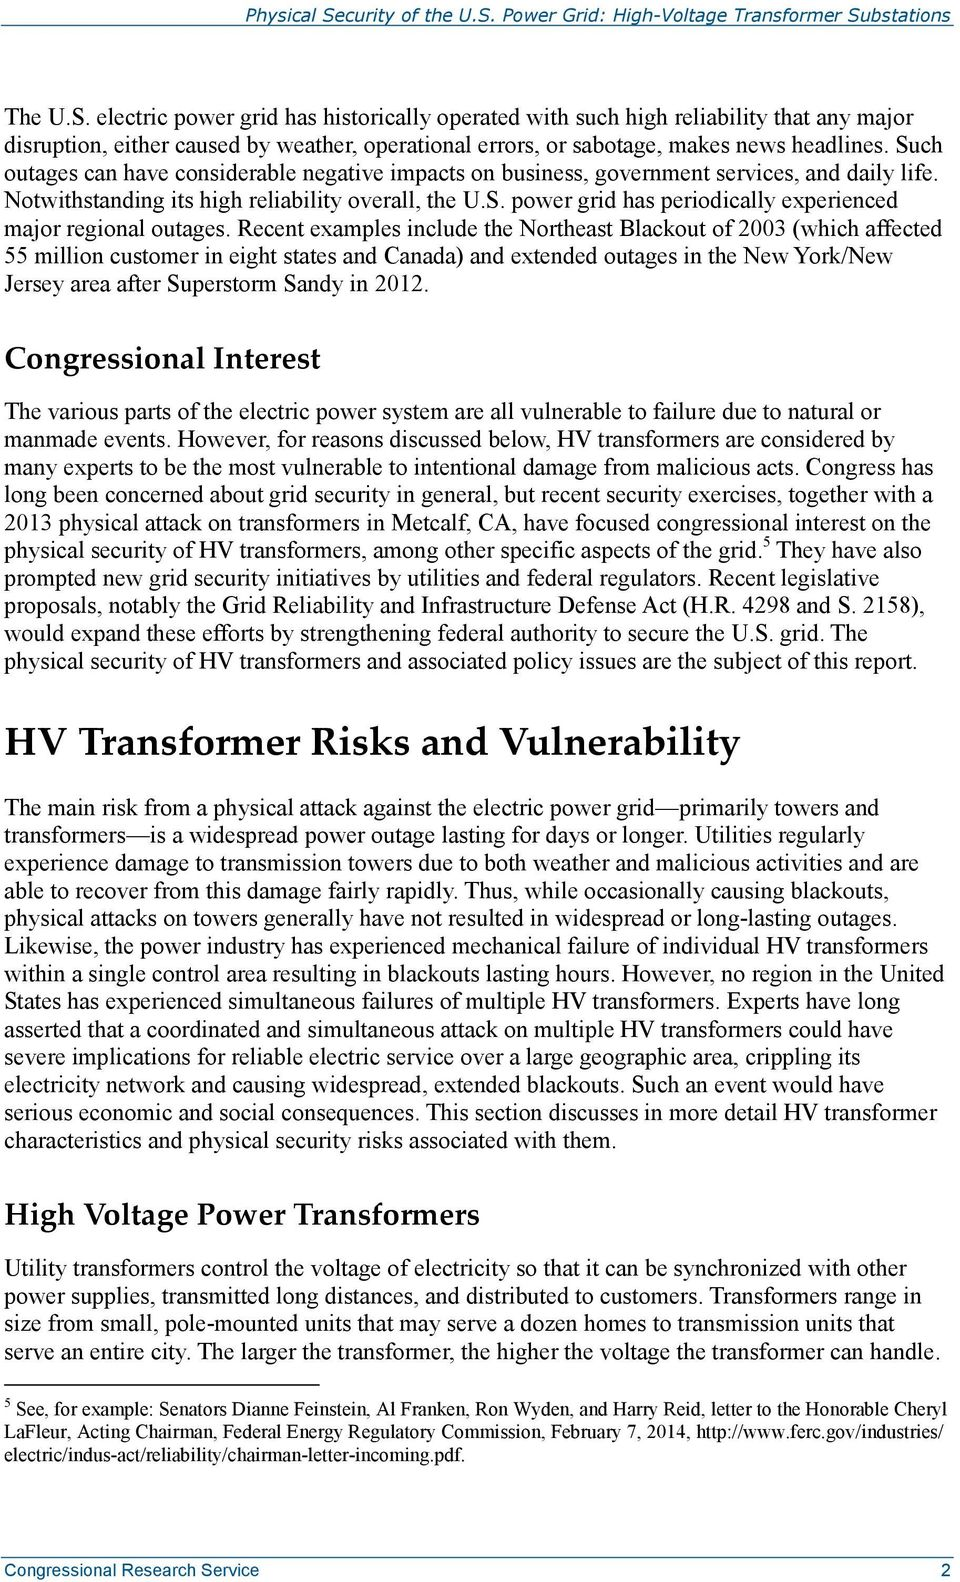 Physical Security of the U S  Power Grid: High-Voltage